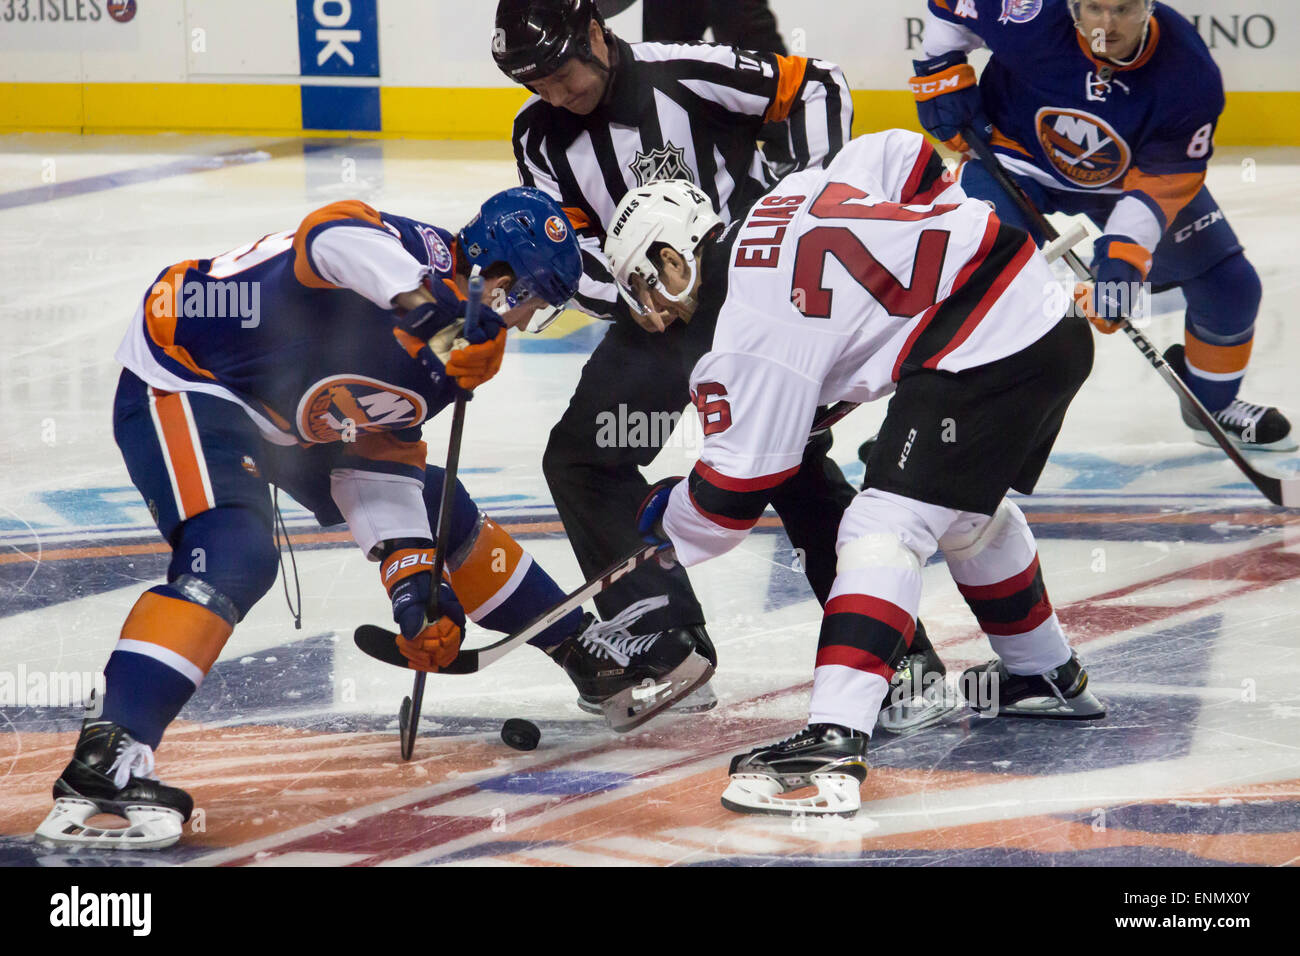 New York Islanders vs. the New Jersey Devils at the Barclay's Center Brooklyn New York September 2014 - Stock Image